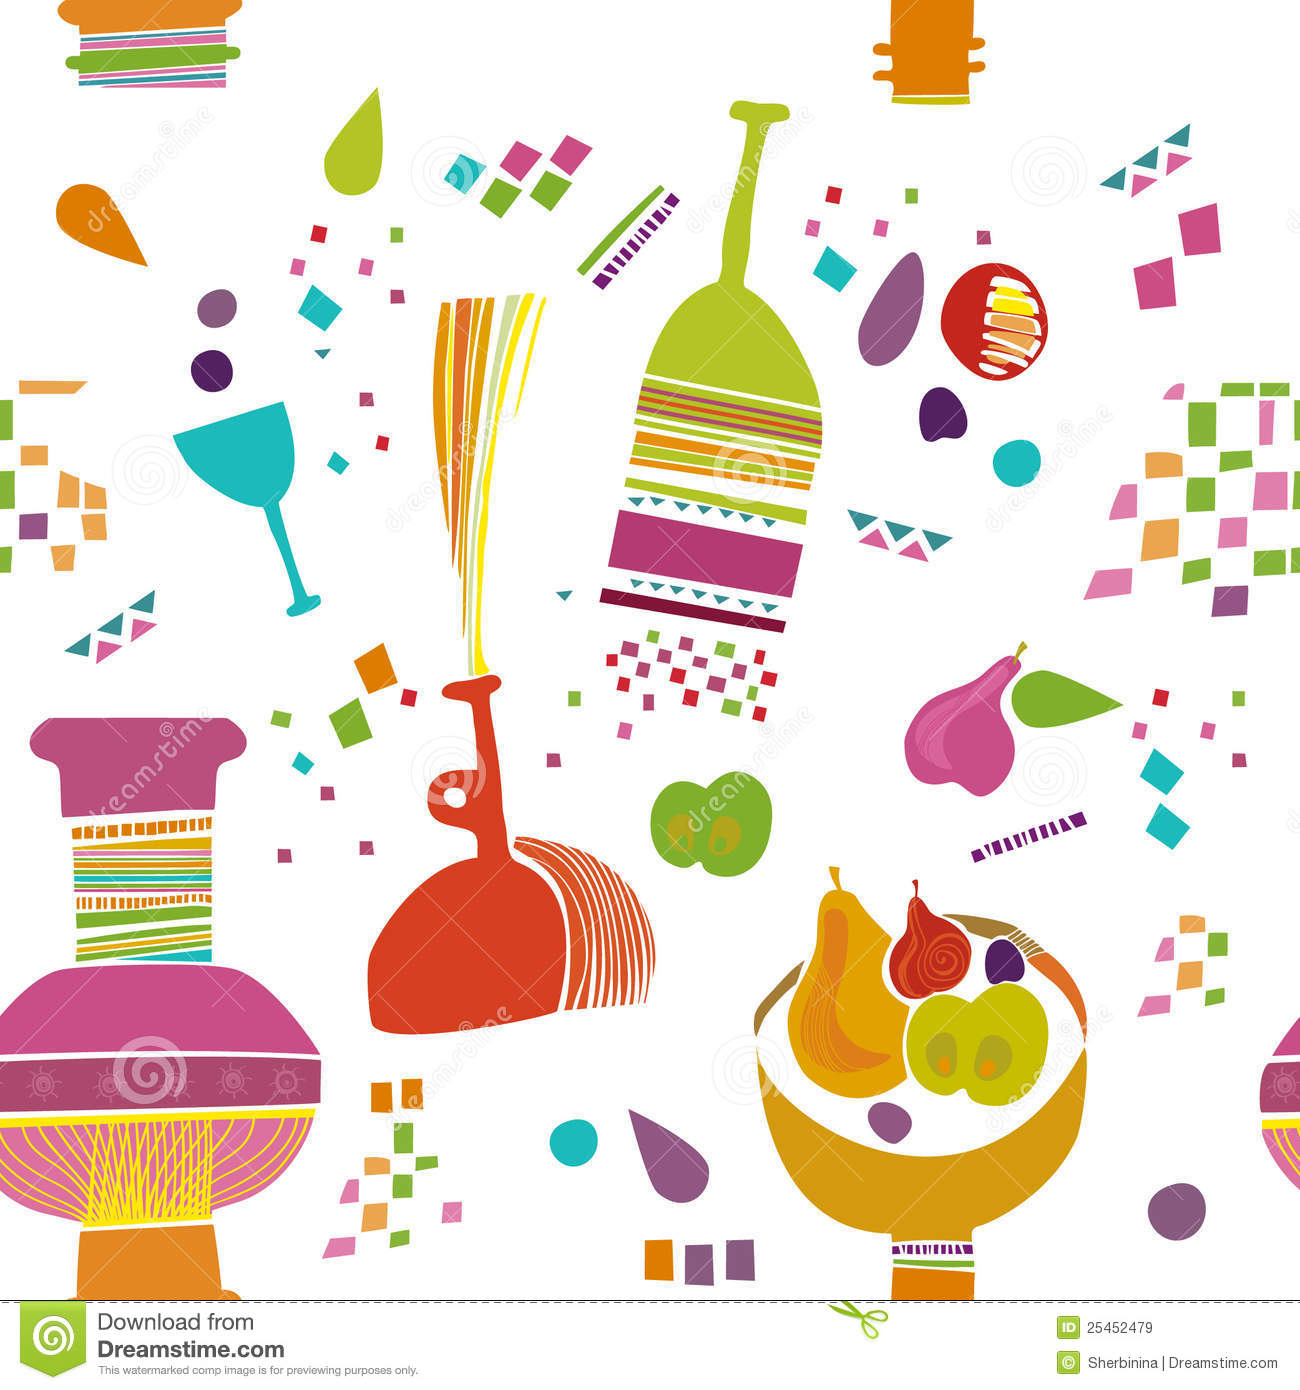 Kids kitchen pattern wallpaper stock illustration image for Kitchen wallpaper patterns